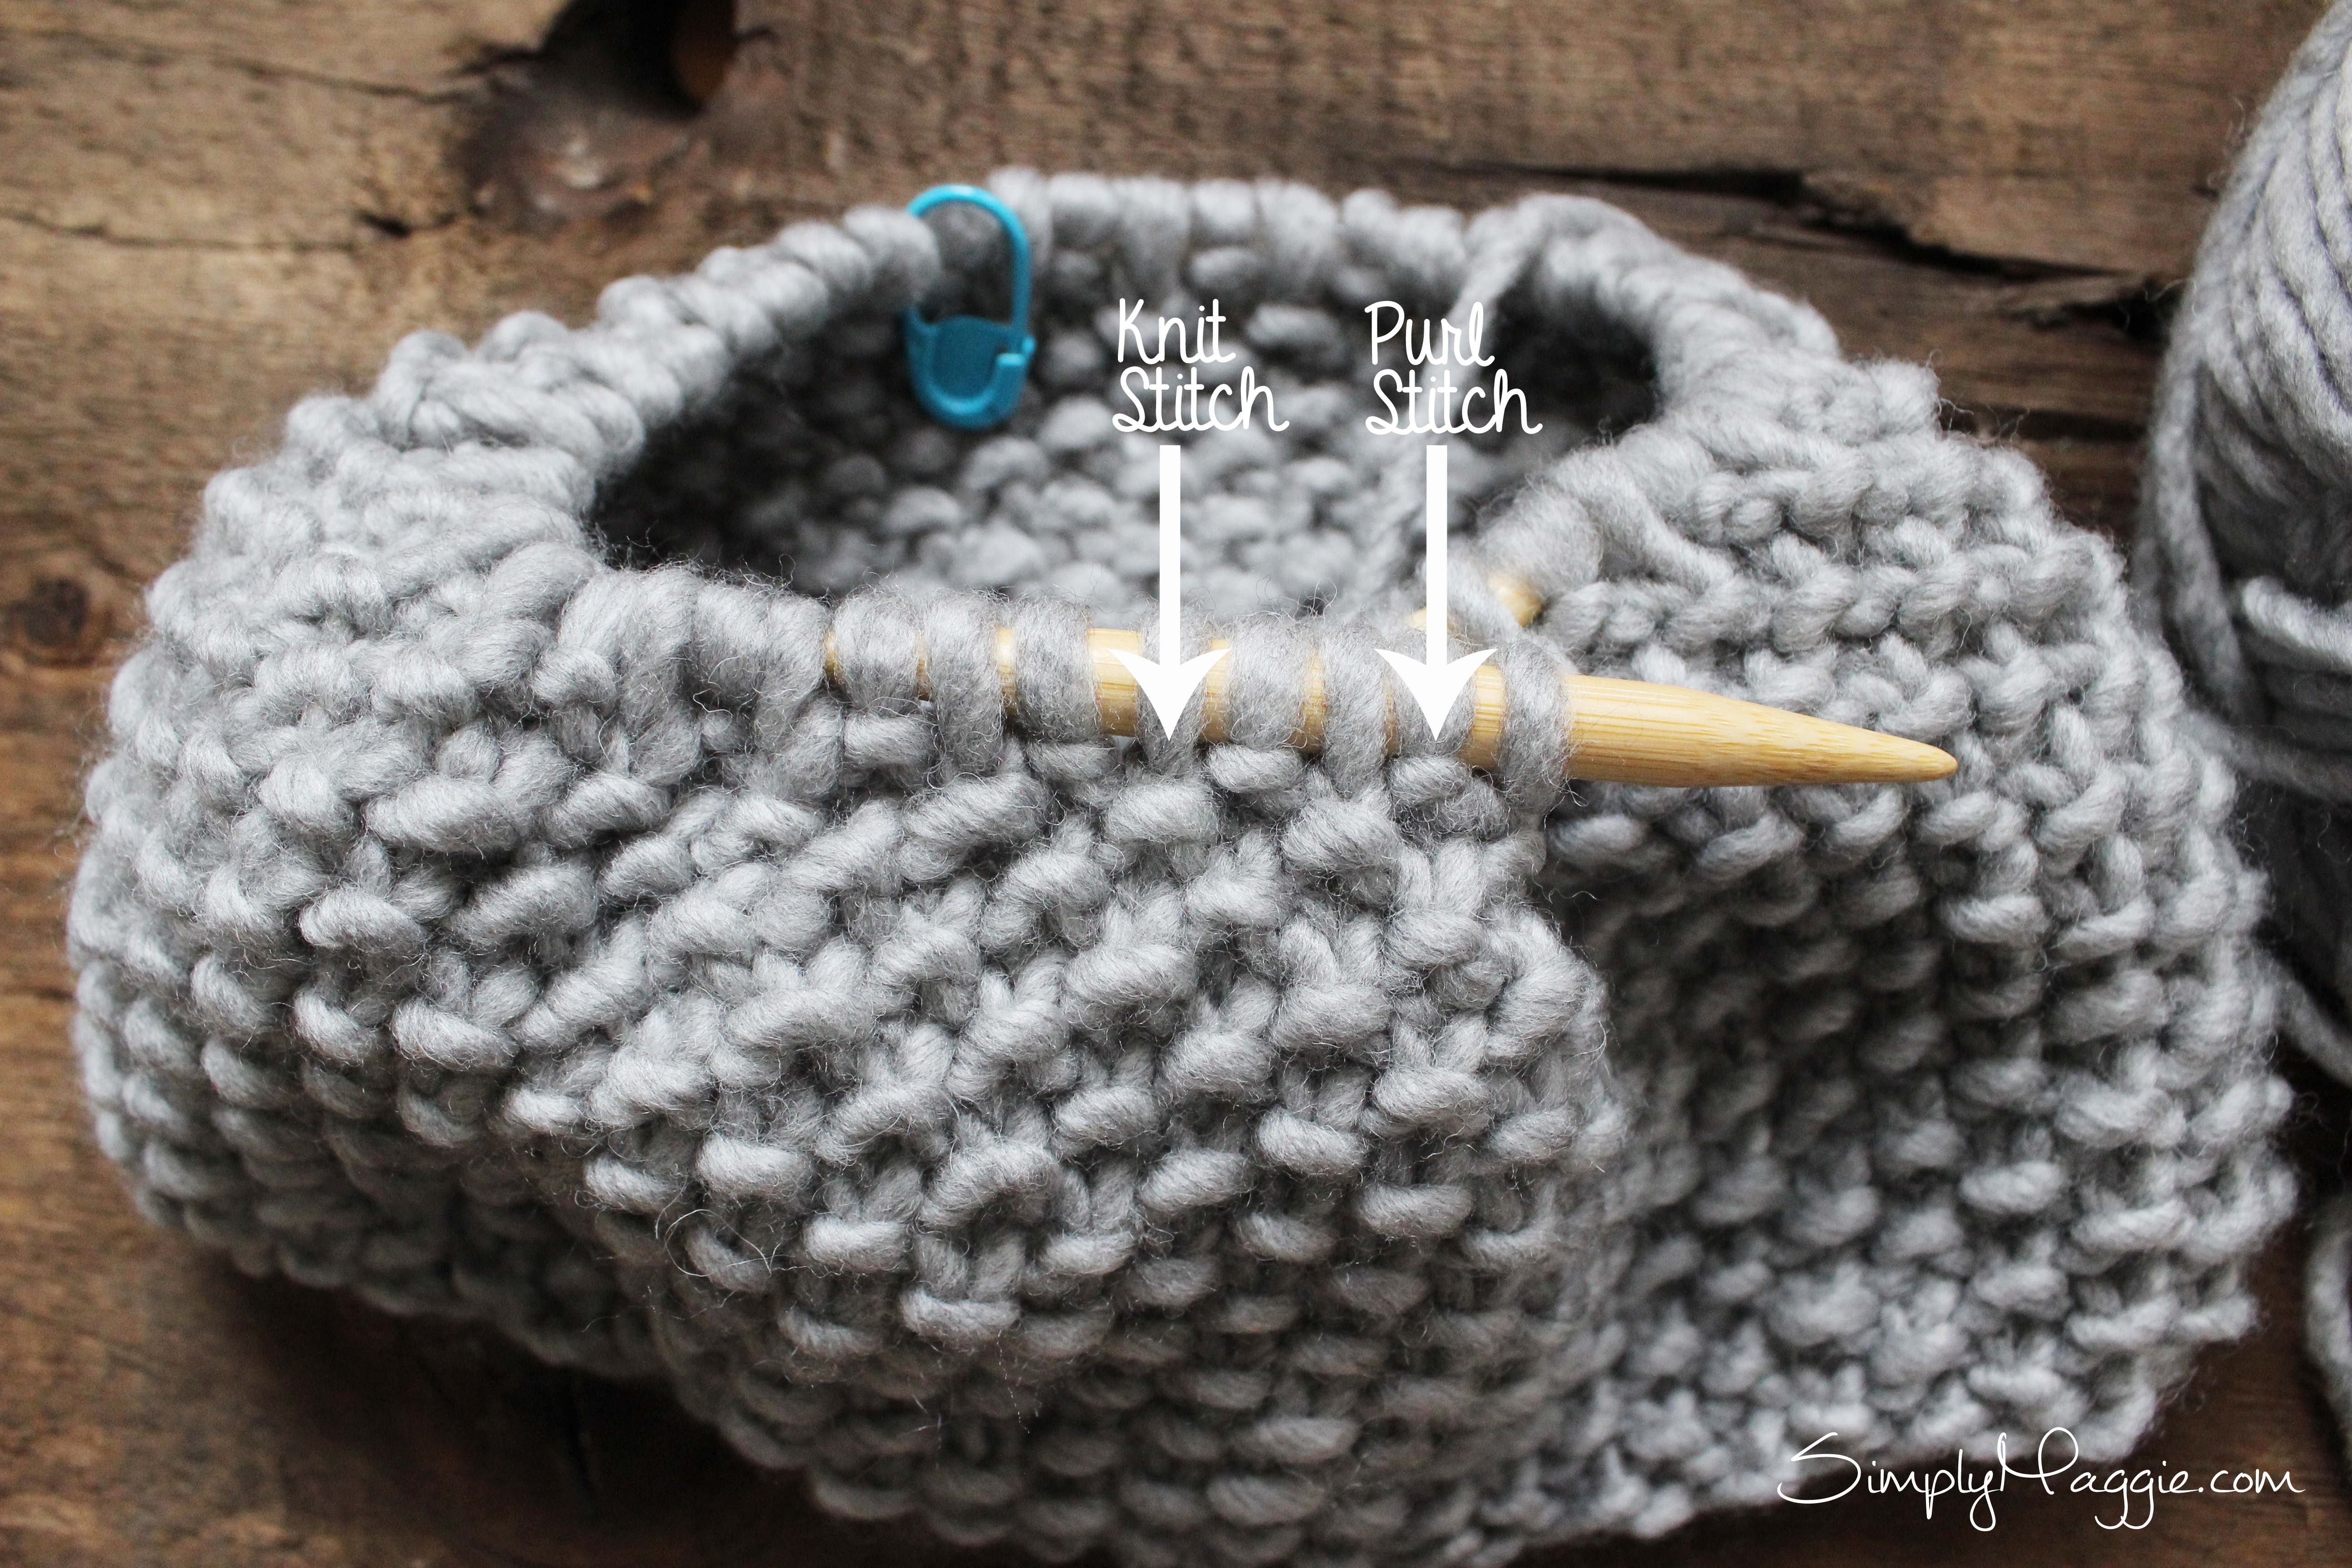 Double Moss Stitch Knitting In The Round : Moss stitch cowl pattern simplymaggie